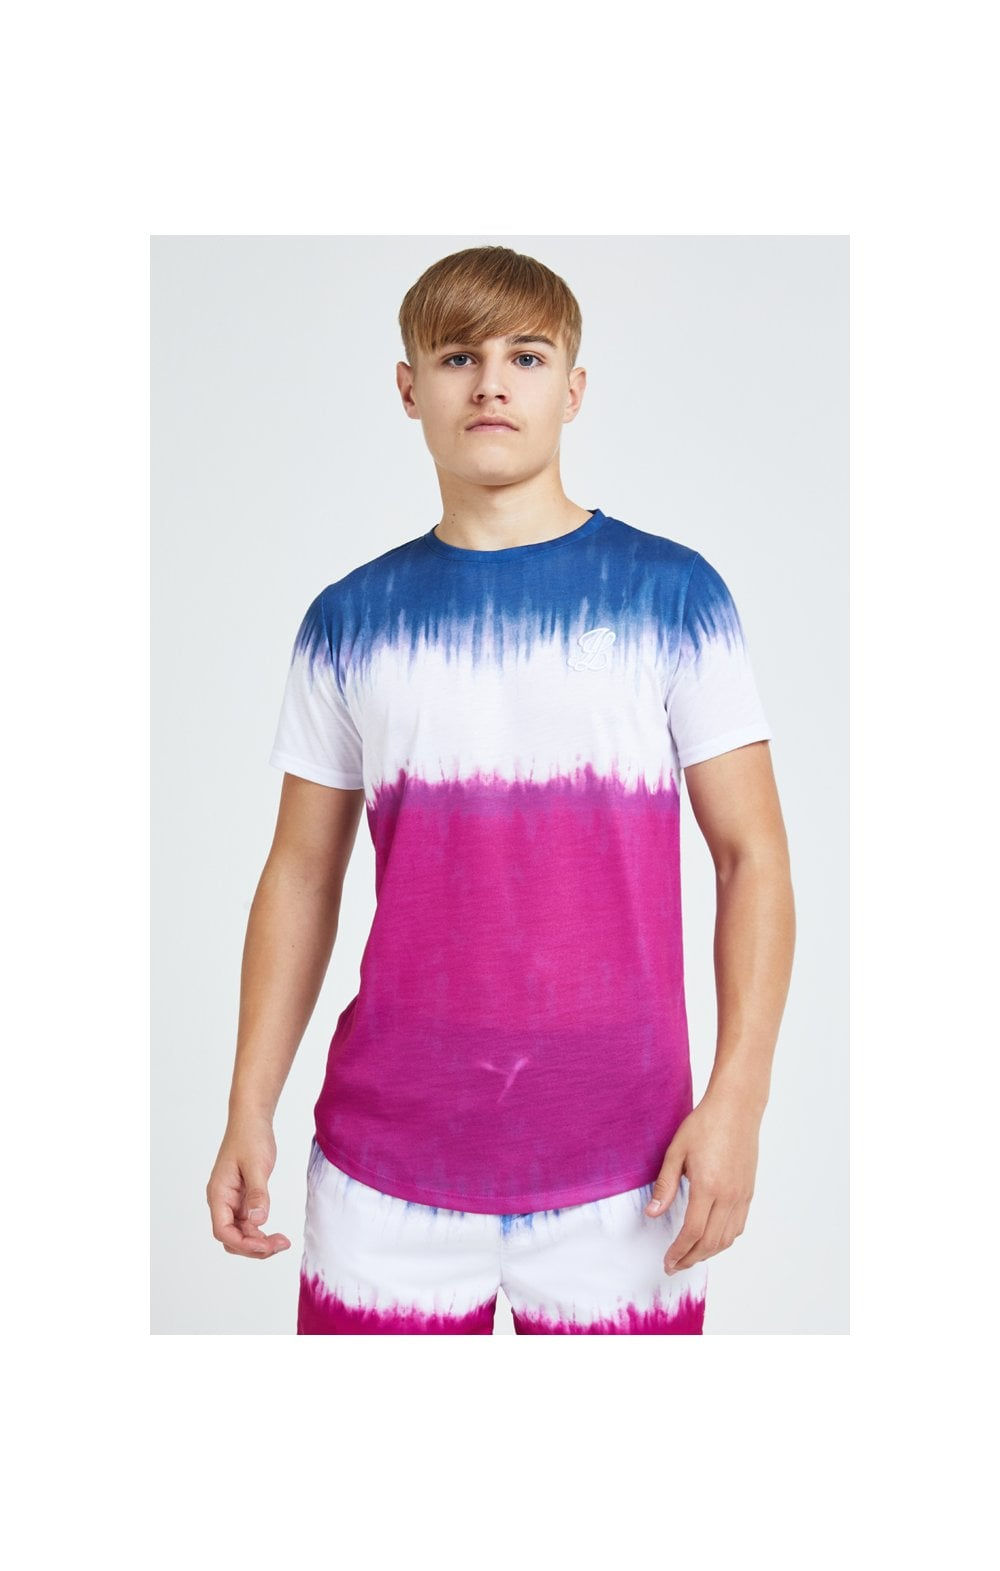 Illusive London Tie Fade Print Tee – Indigo, White & Pink